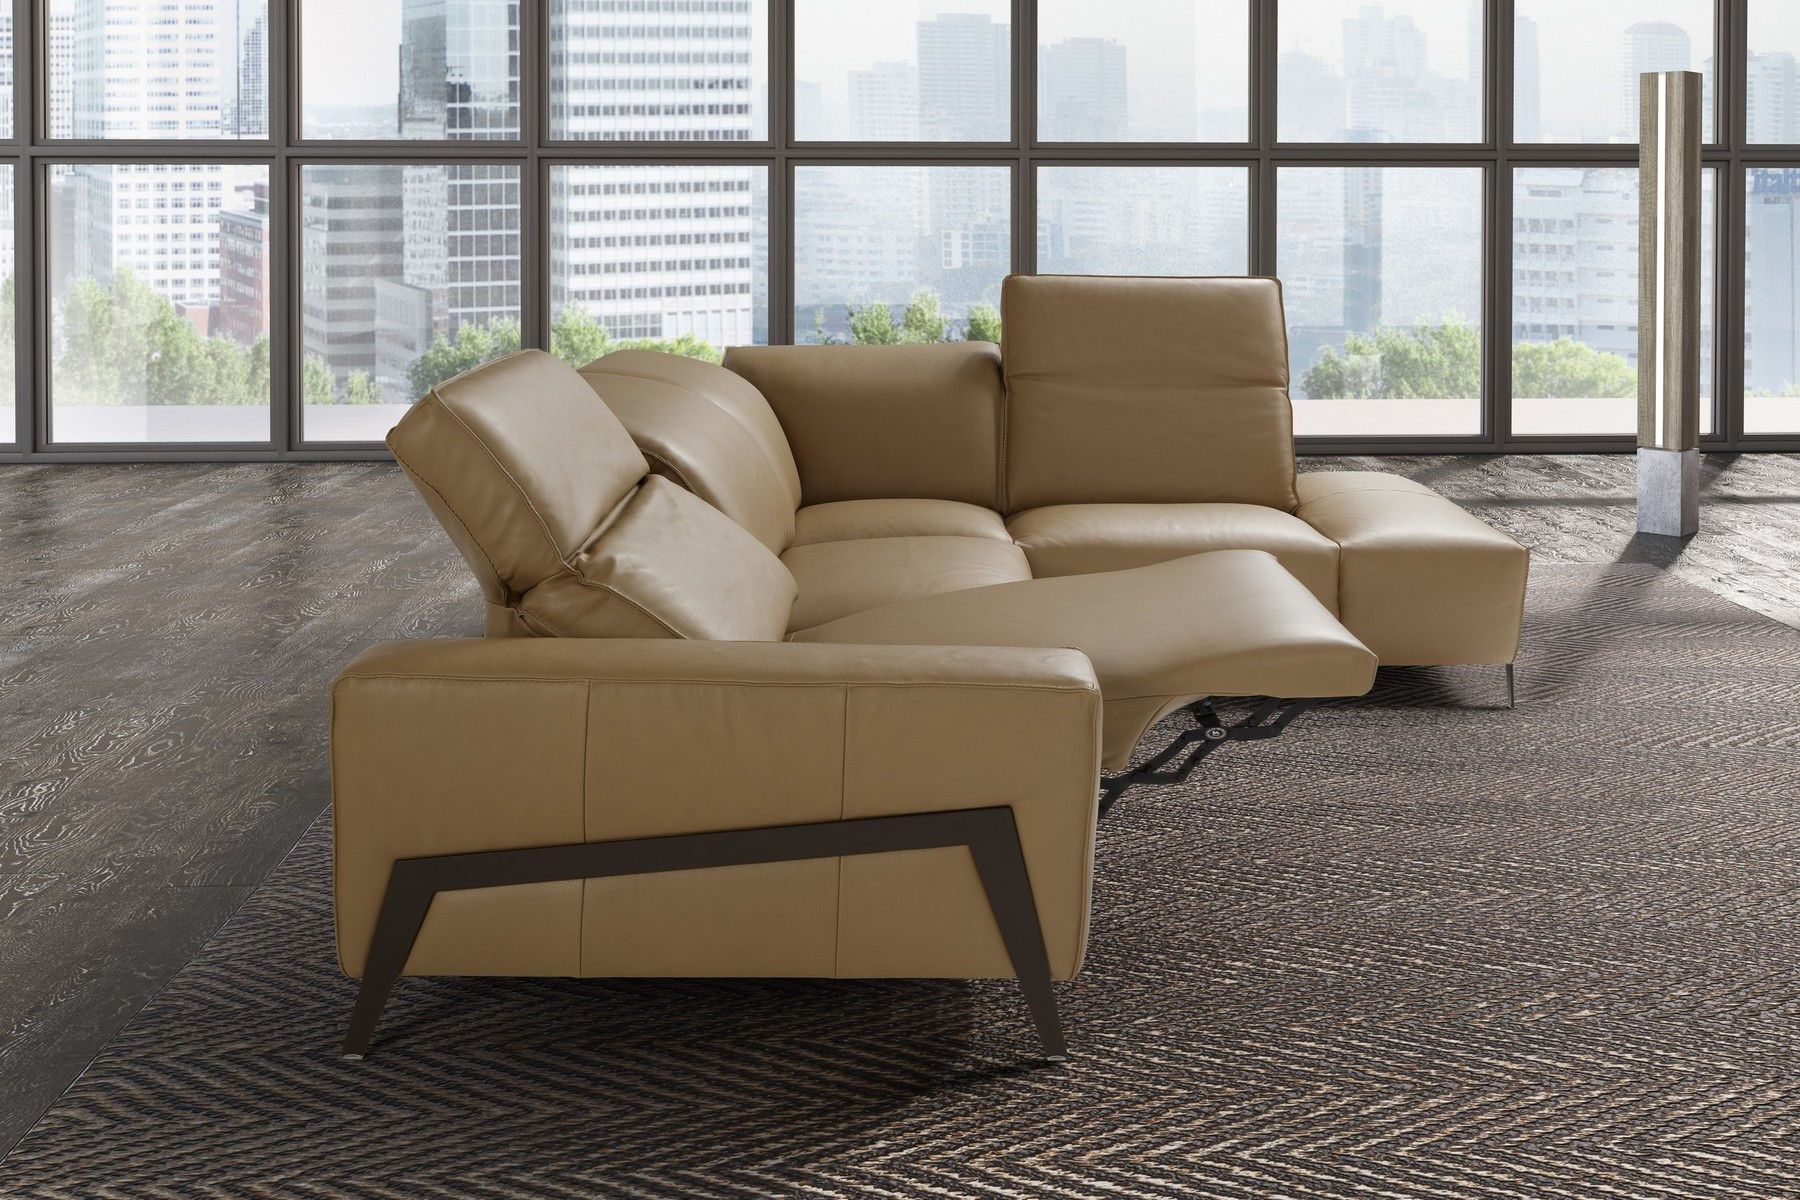 Ocean Rf Miele Sectional Sofa In 2020 Sectional Sofa Sofa Leather Sectional